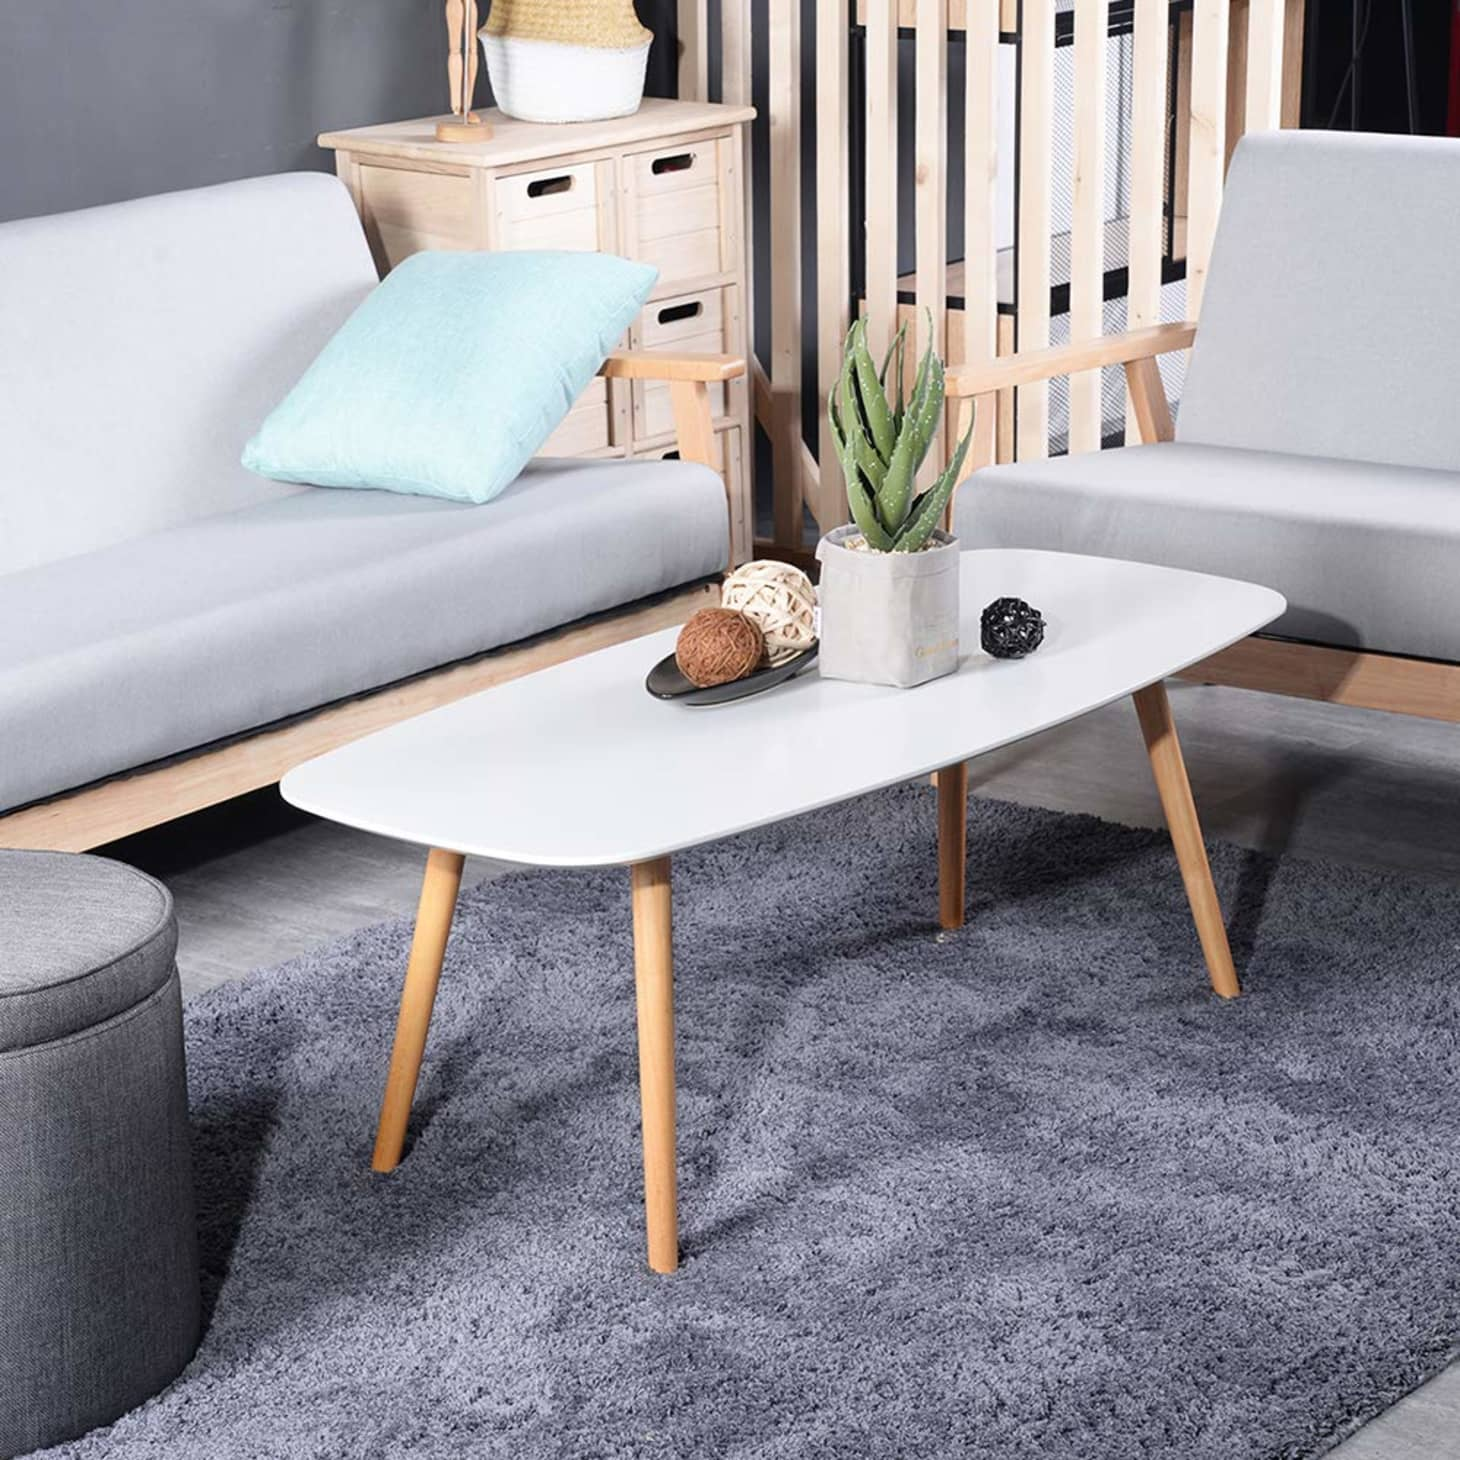 The Best Budget Coffee Tables on Amazon | Apartment Therapy